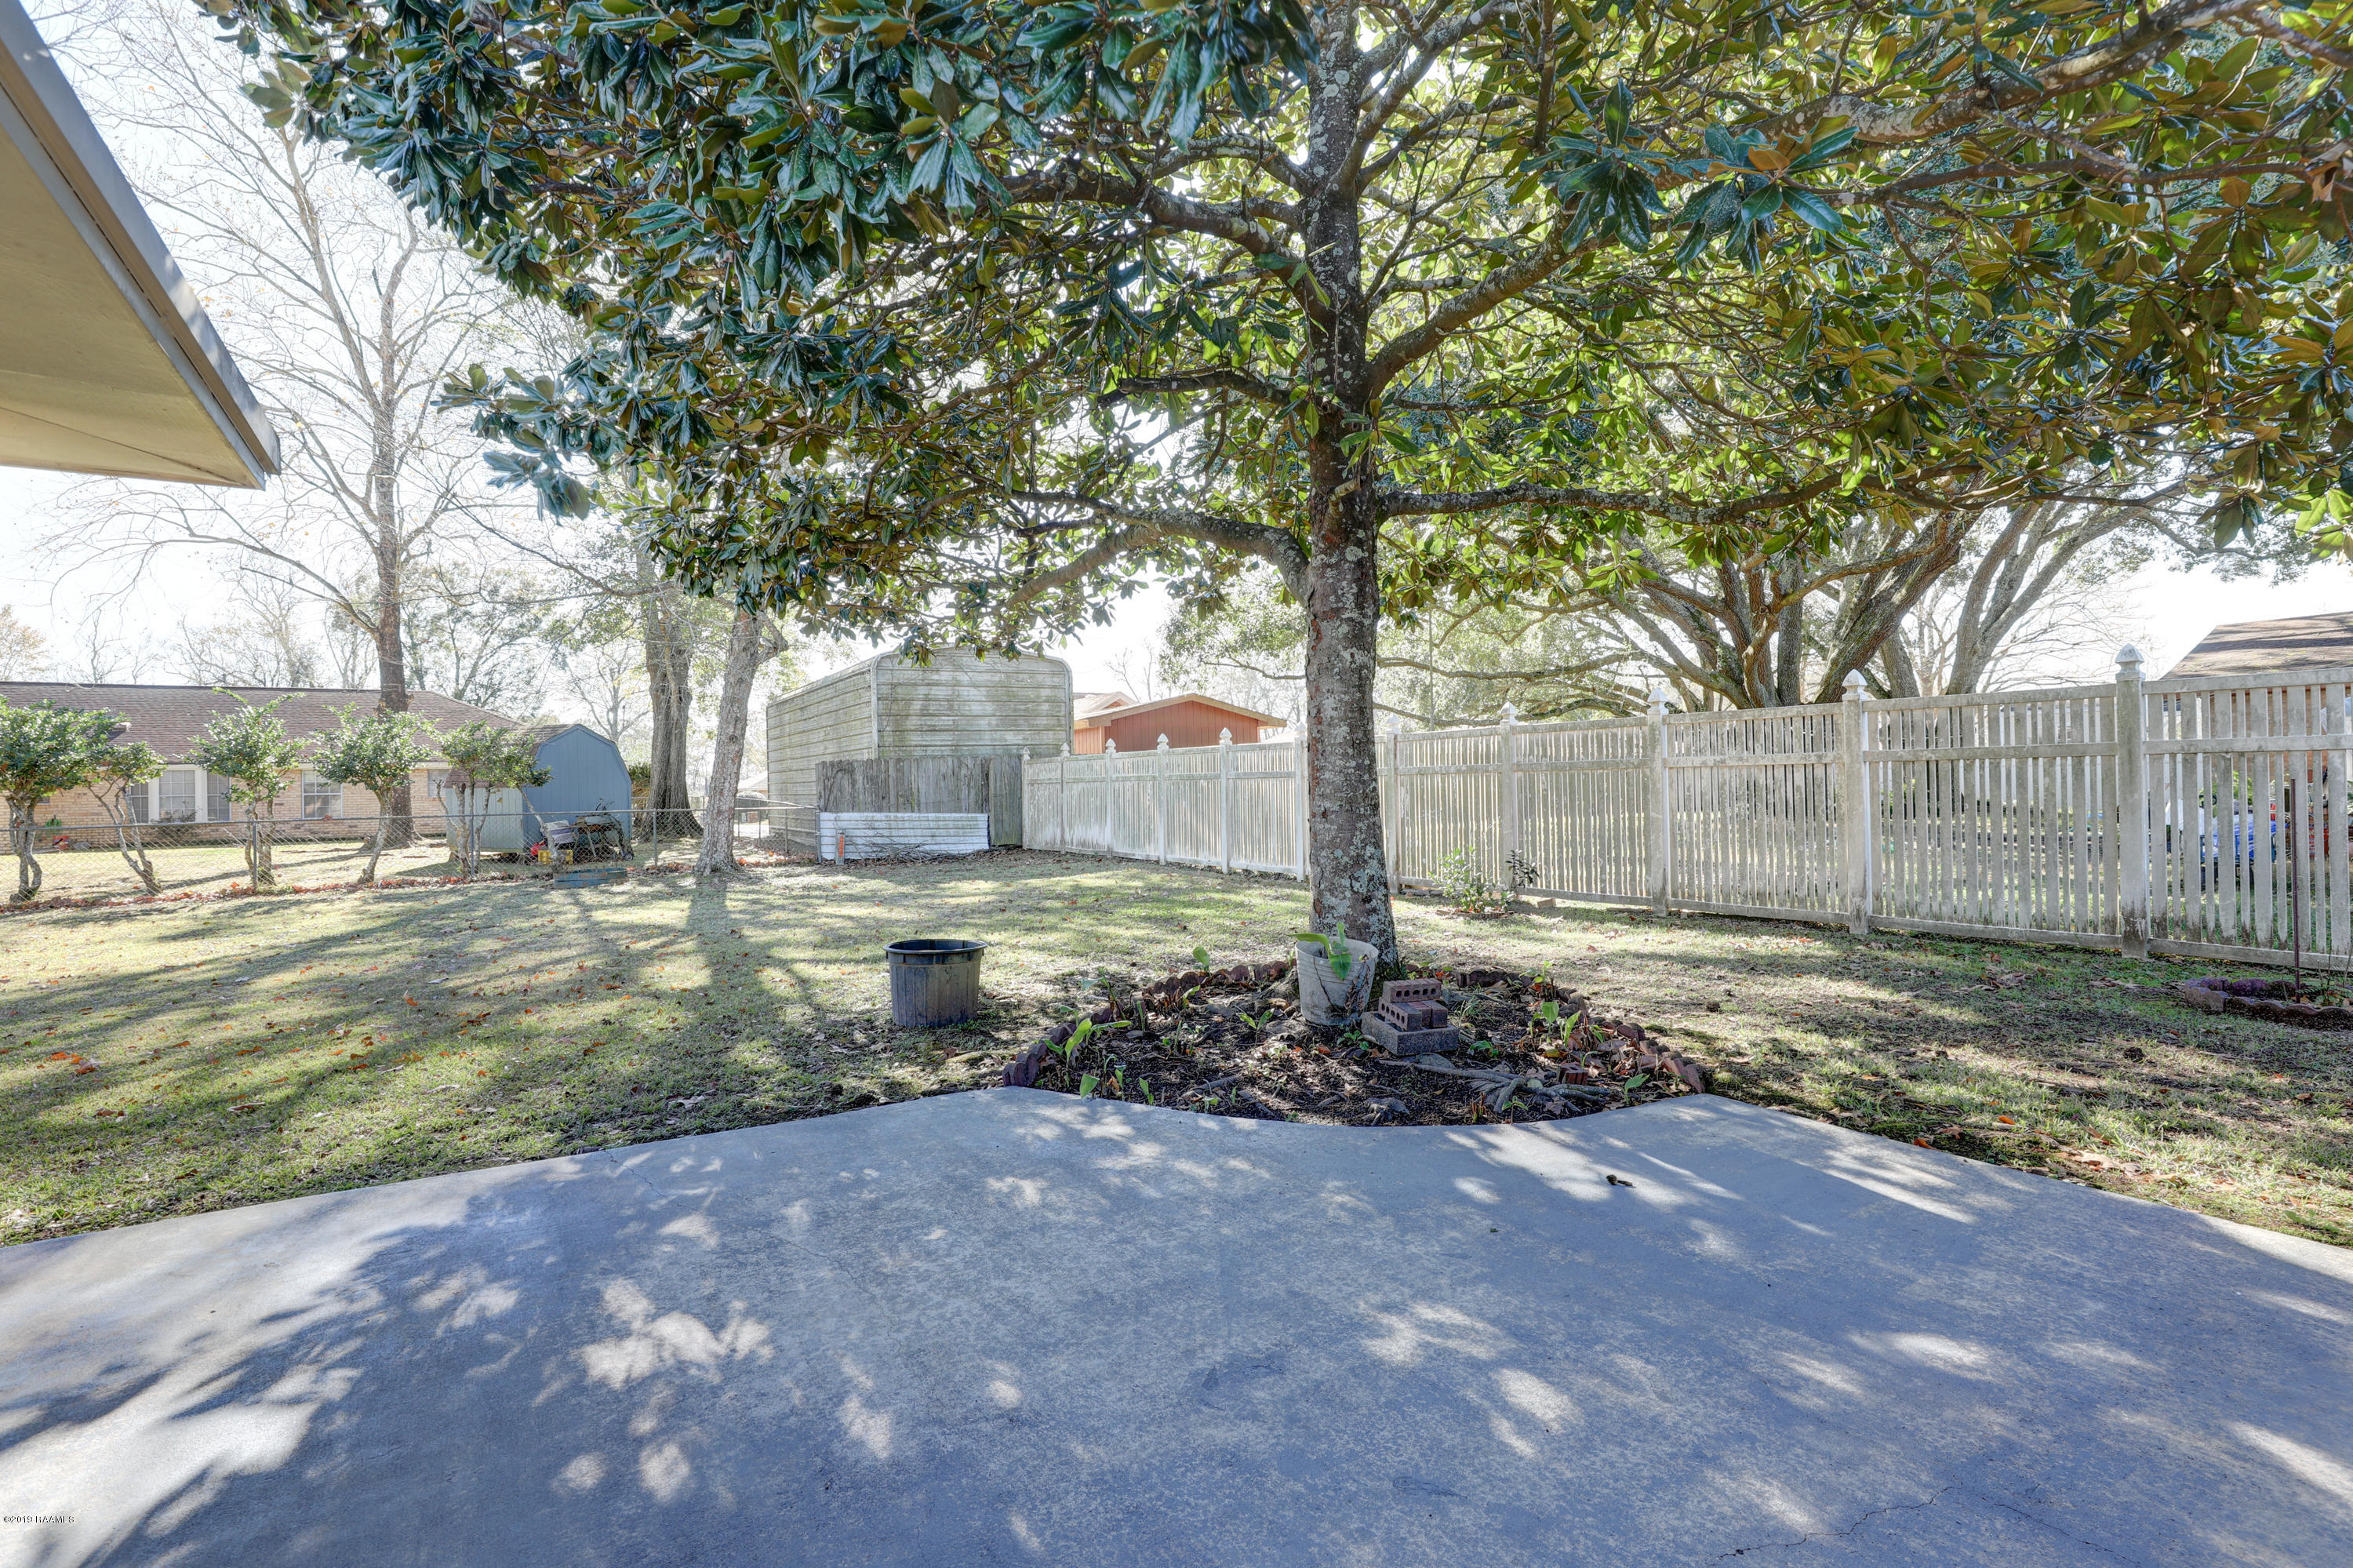 206 Persimmon Place, Lafayette, LA 70507 Photo #28